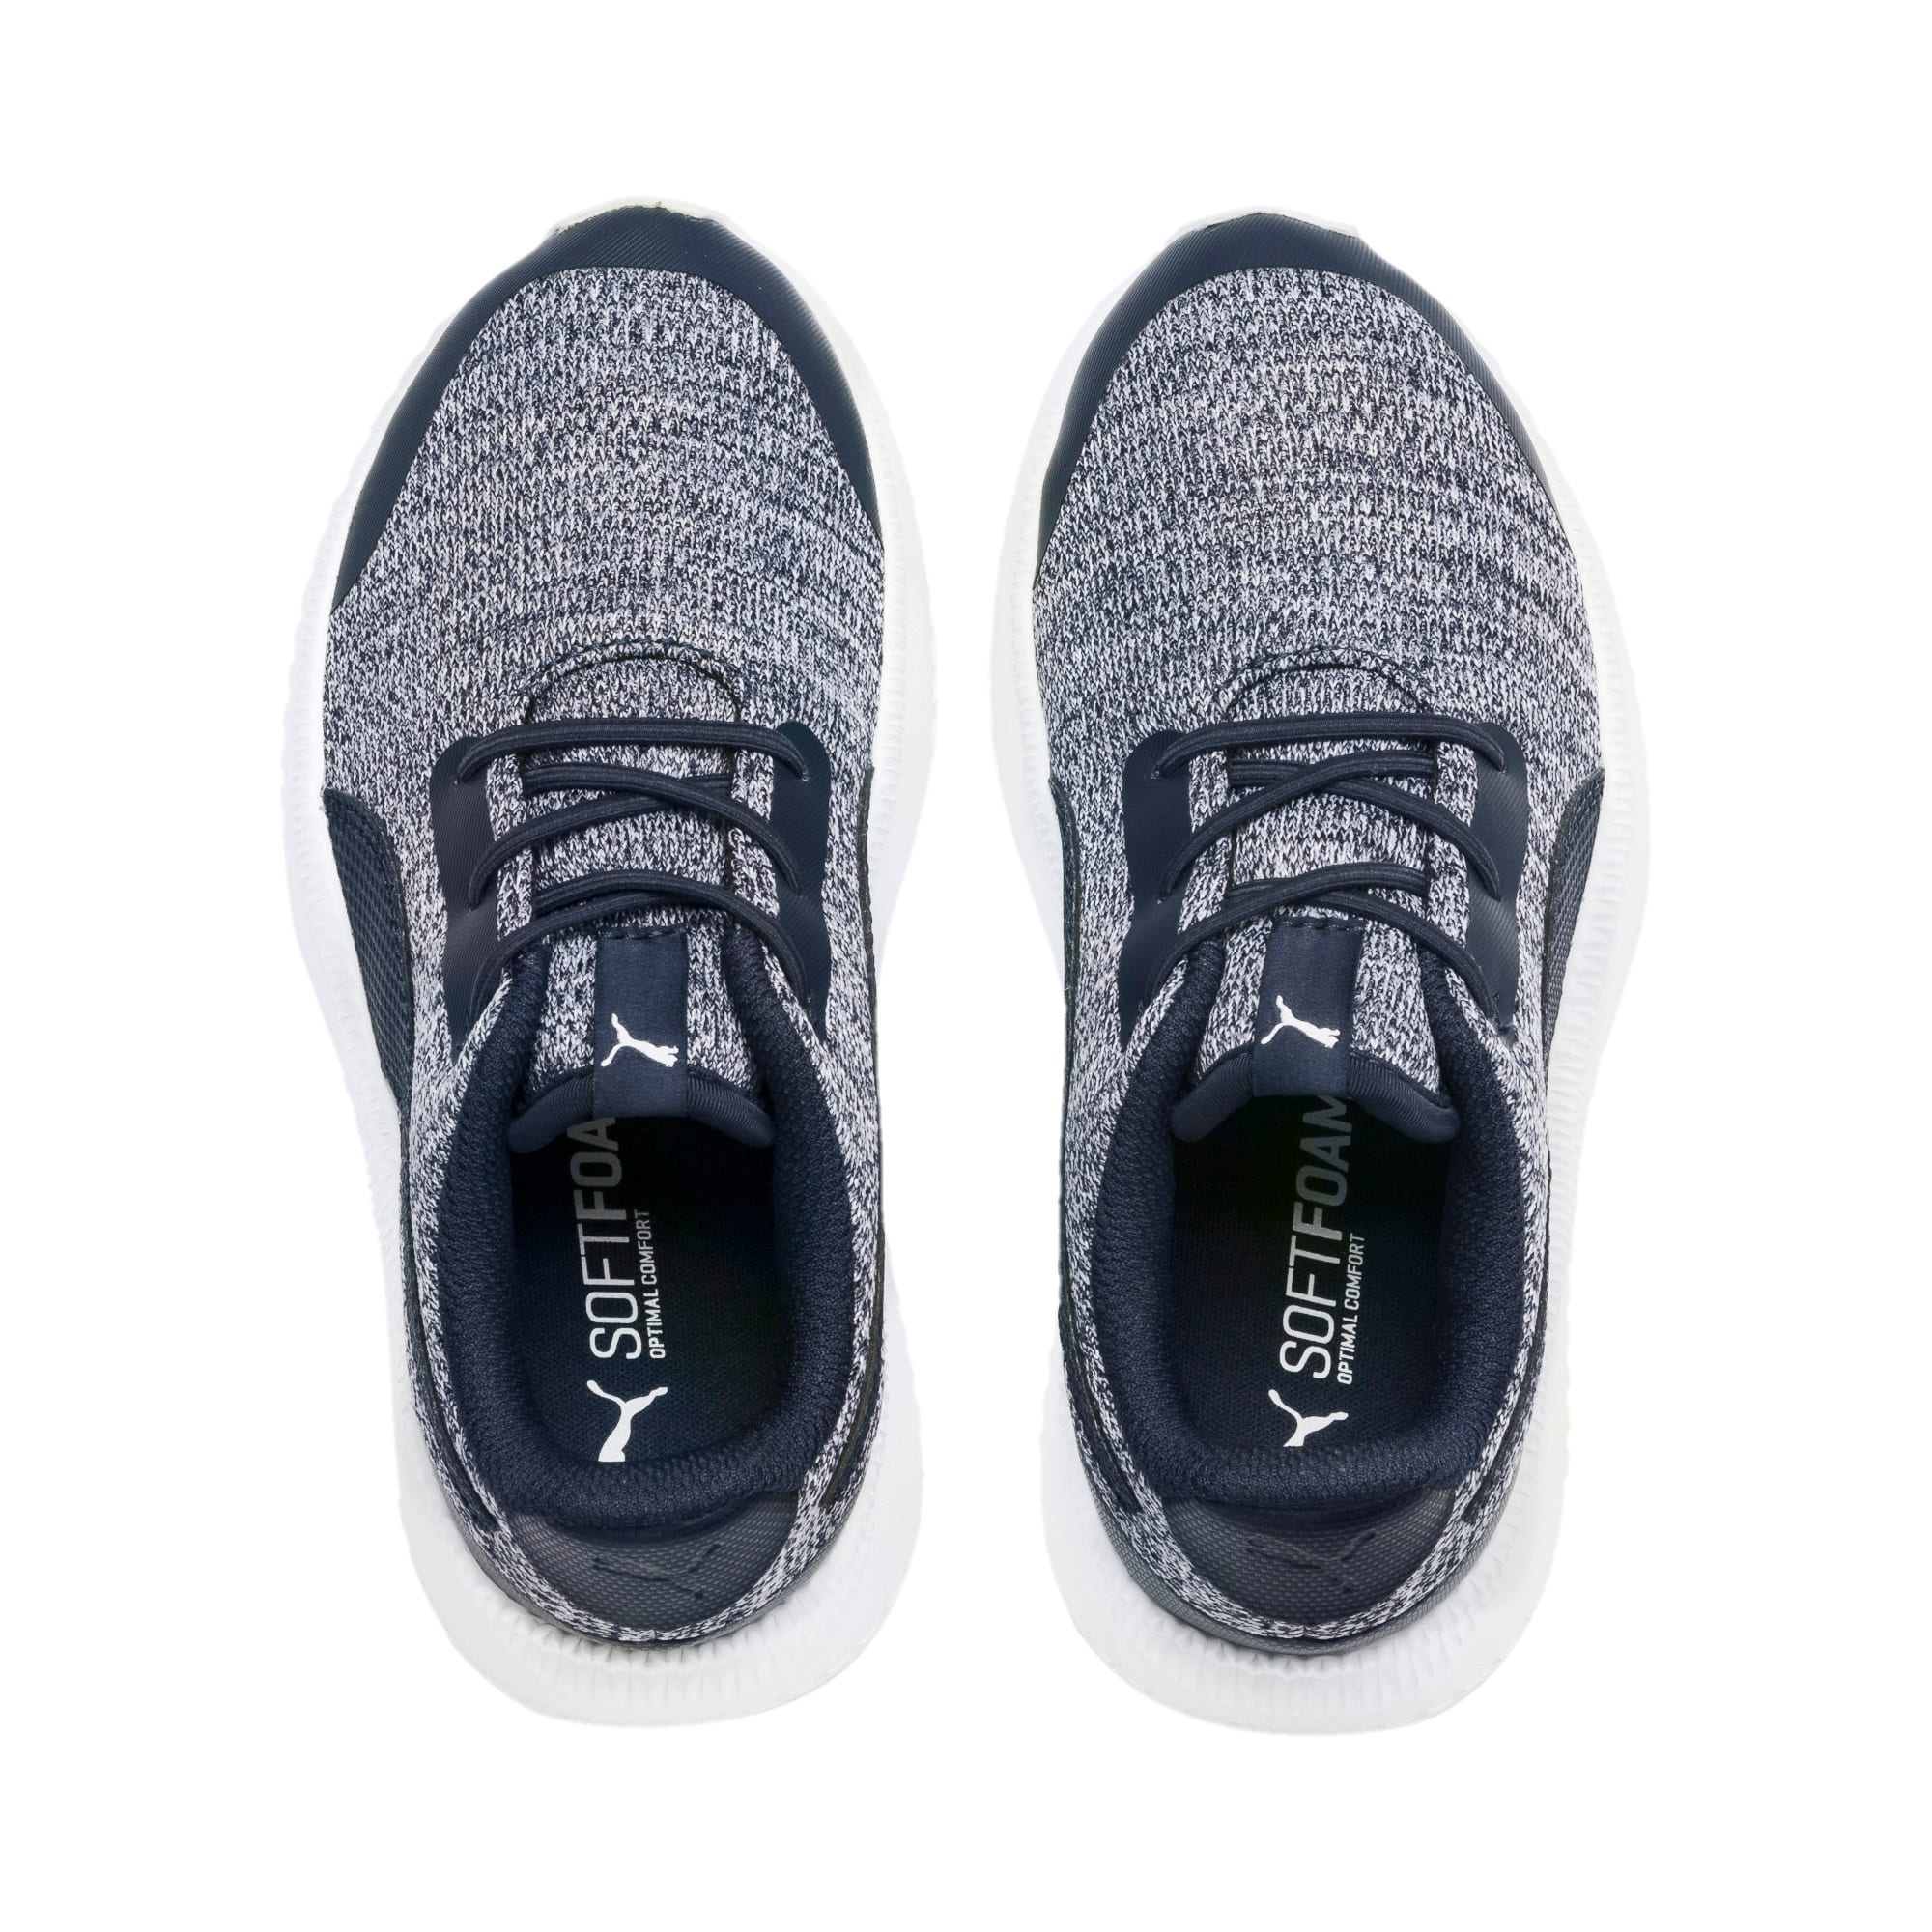 Thumbnail 6 of Pacer Next FS Knit AC Kids' Trainers, Peacoat-Puma White, medium-IND